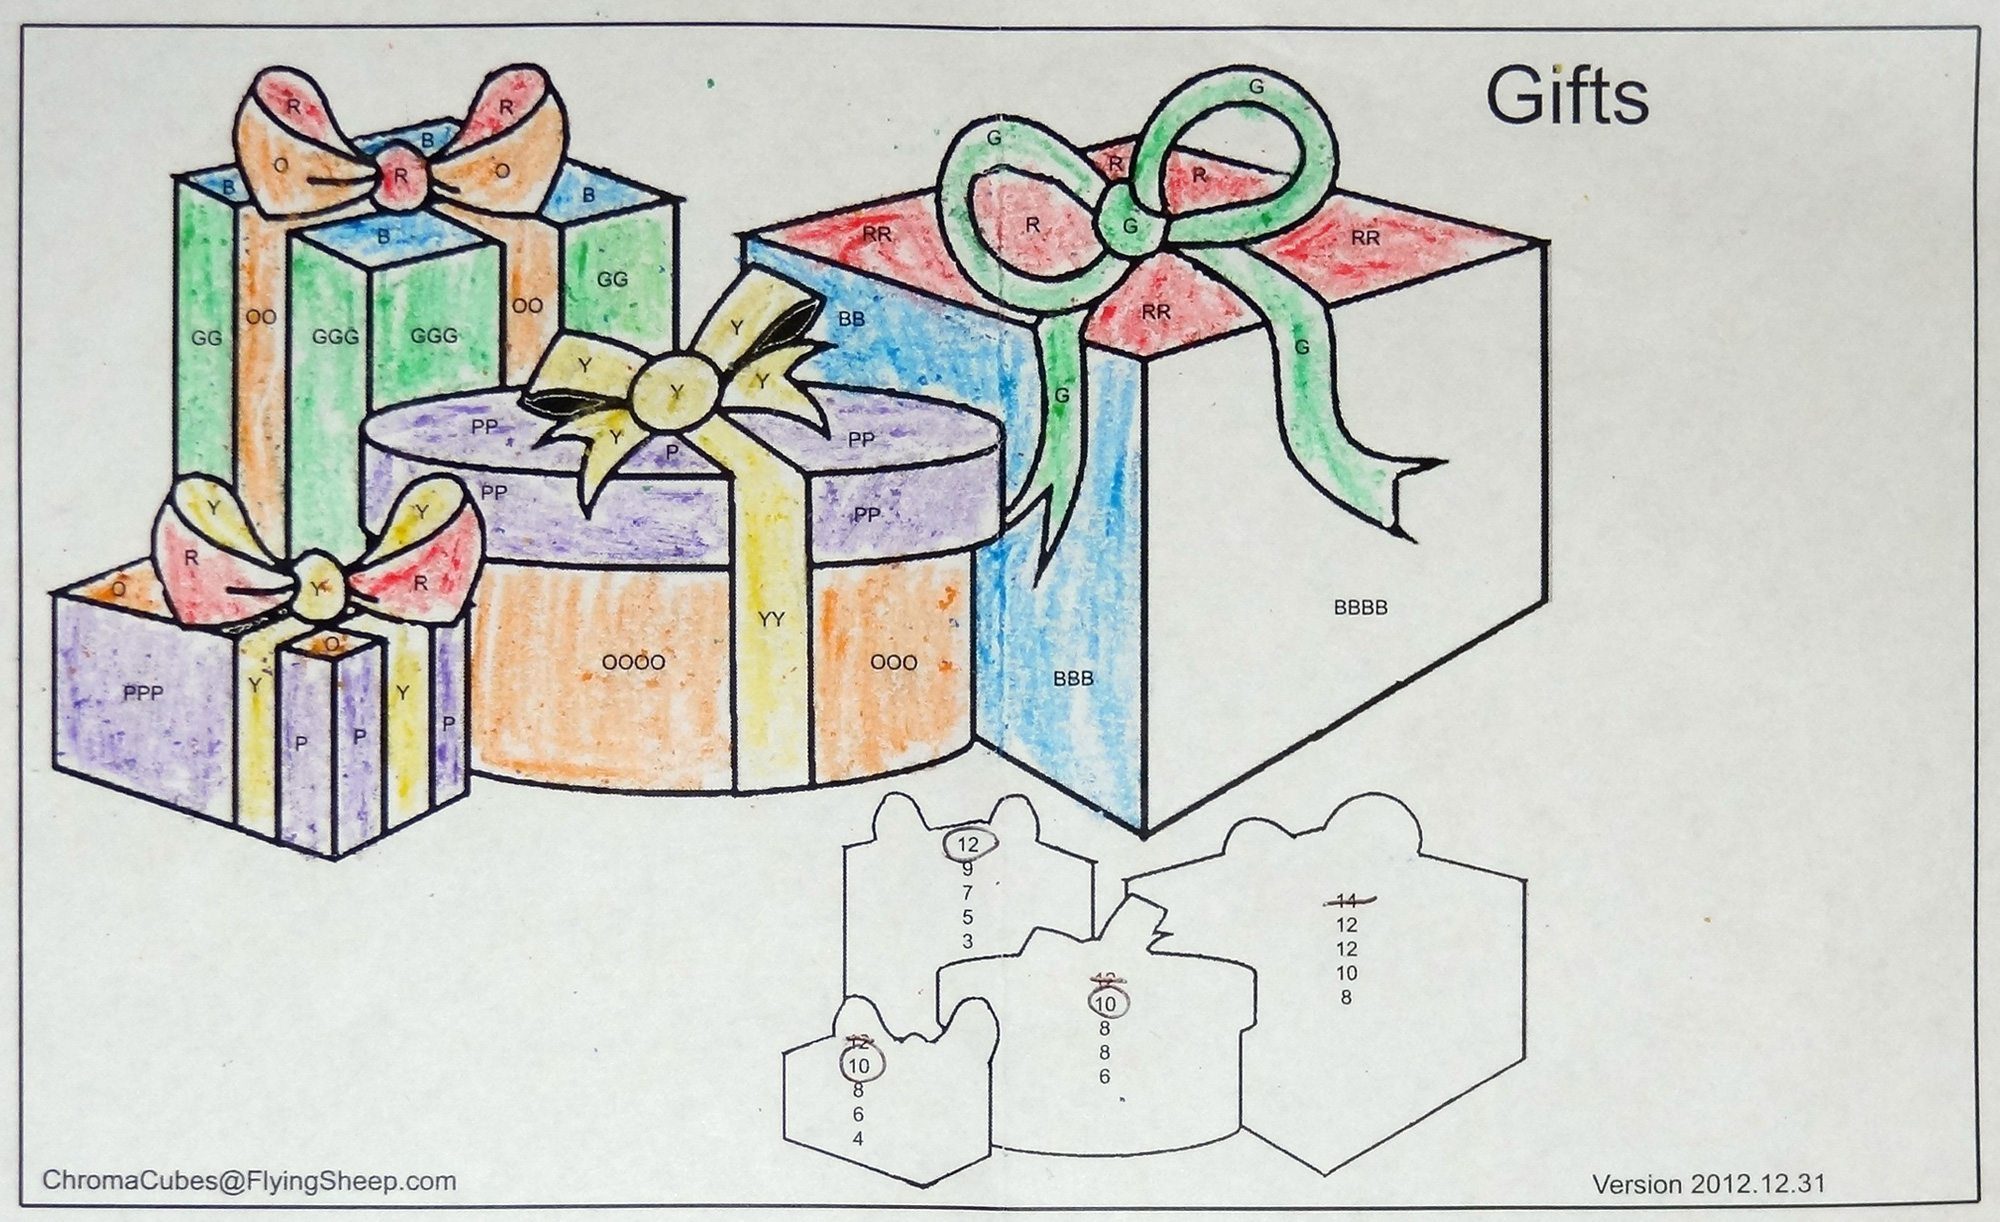 Chroma Cubes gifts